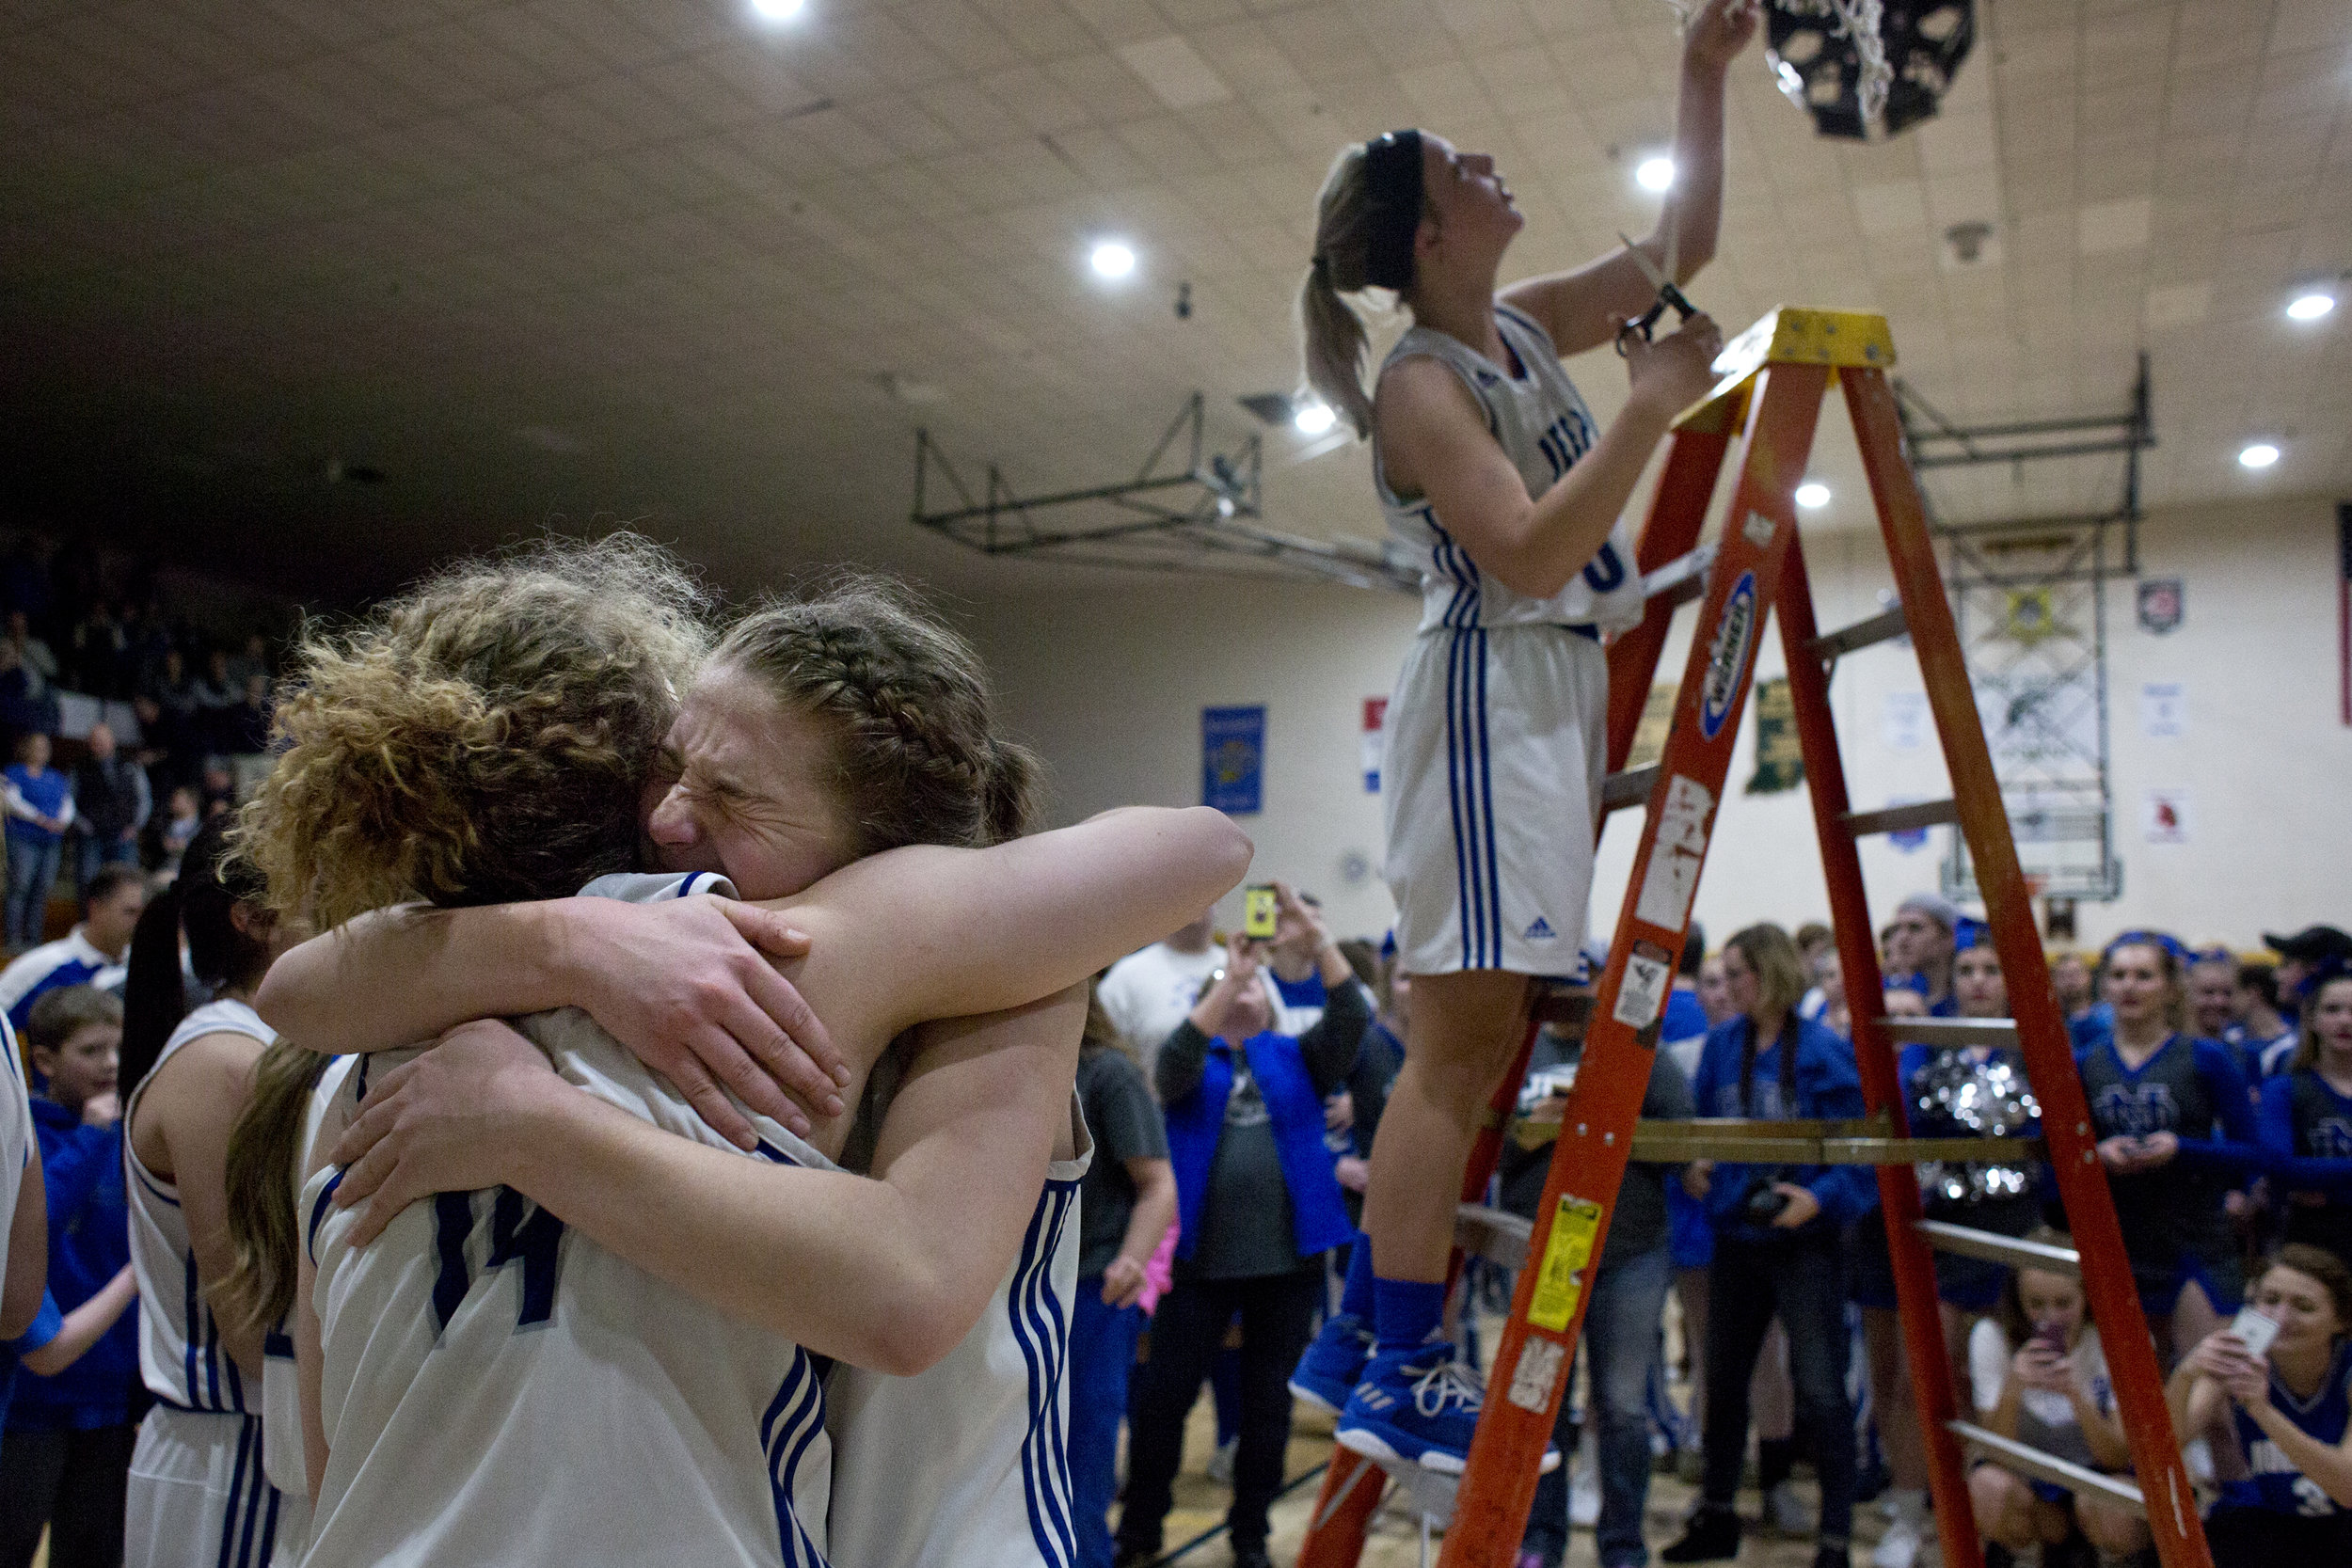 Northeast Dubois' Clare Mangin and Tyla Rasche embraced while Kortney Quinn cut the hoop down after defeating Wood Memorial at Wood Memorial High School in Oakland City on Saturday. The Jeeps won 35-30 to claim the Class 1A Sectional title.